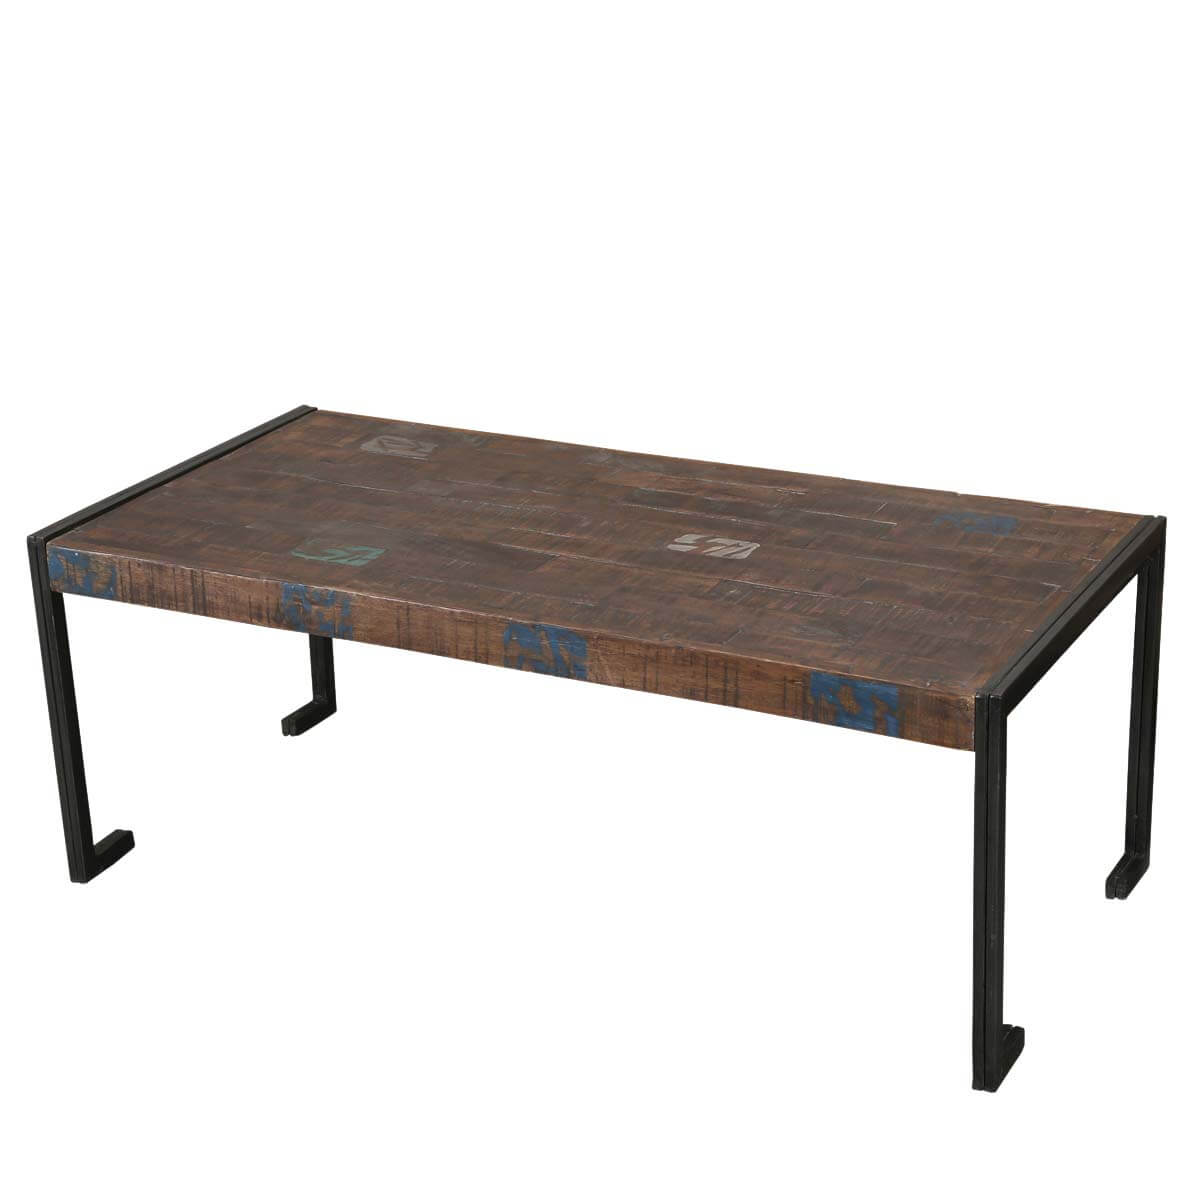 Philadelphia reclaimed wood industrial metal frame rustic coffee table Industrial metal coffee table